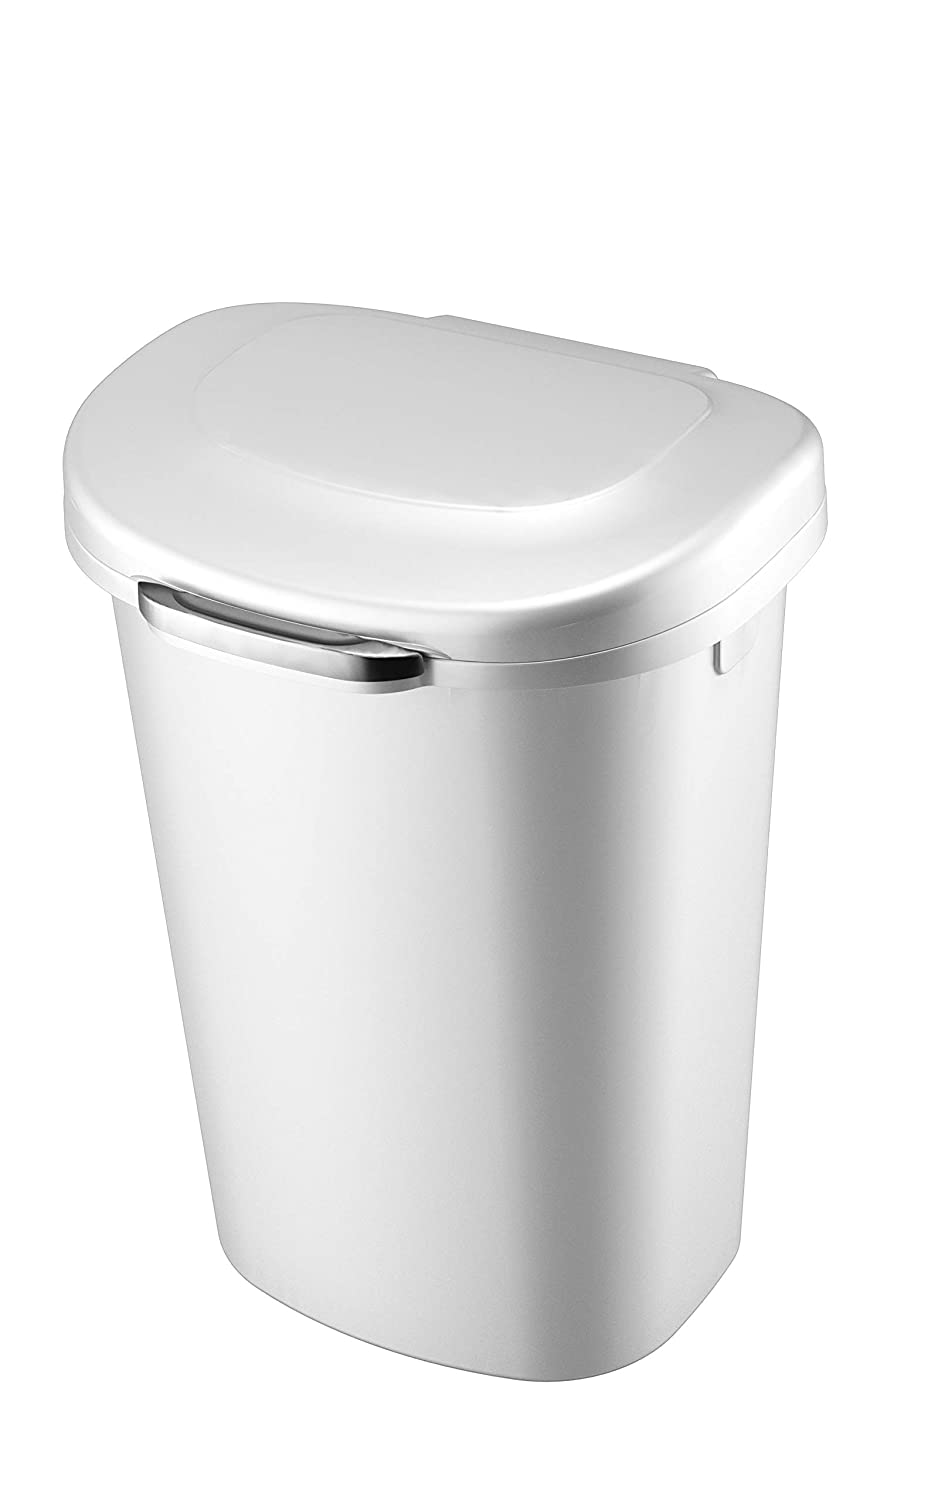 Rubbermaid Touch-Top Lid Trash Can for Home, Kitchen, and Bathroom Garbage, 13-gallon, White